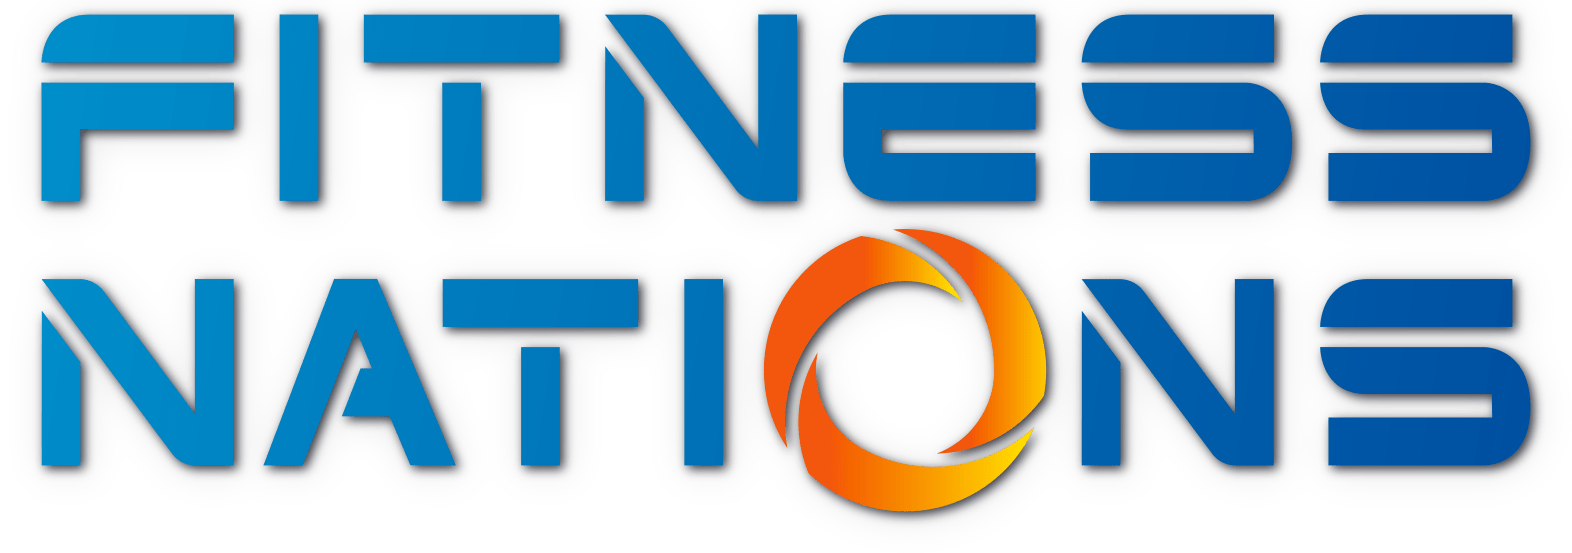 Logo association Fitness Nations